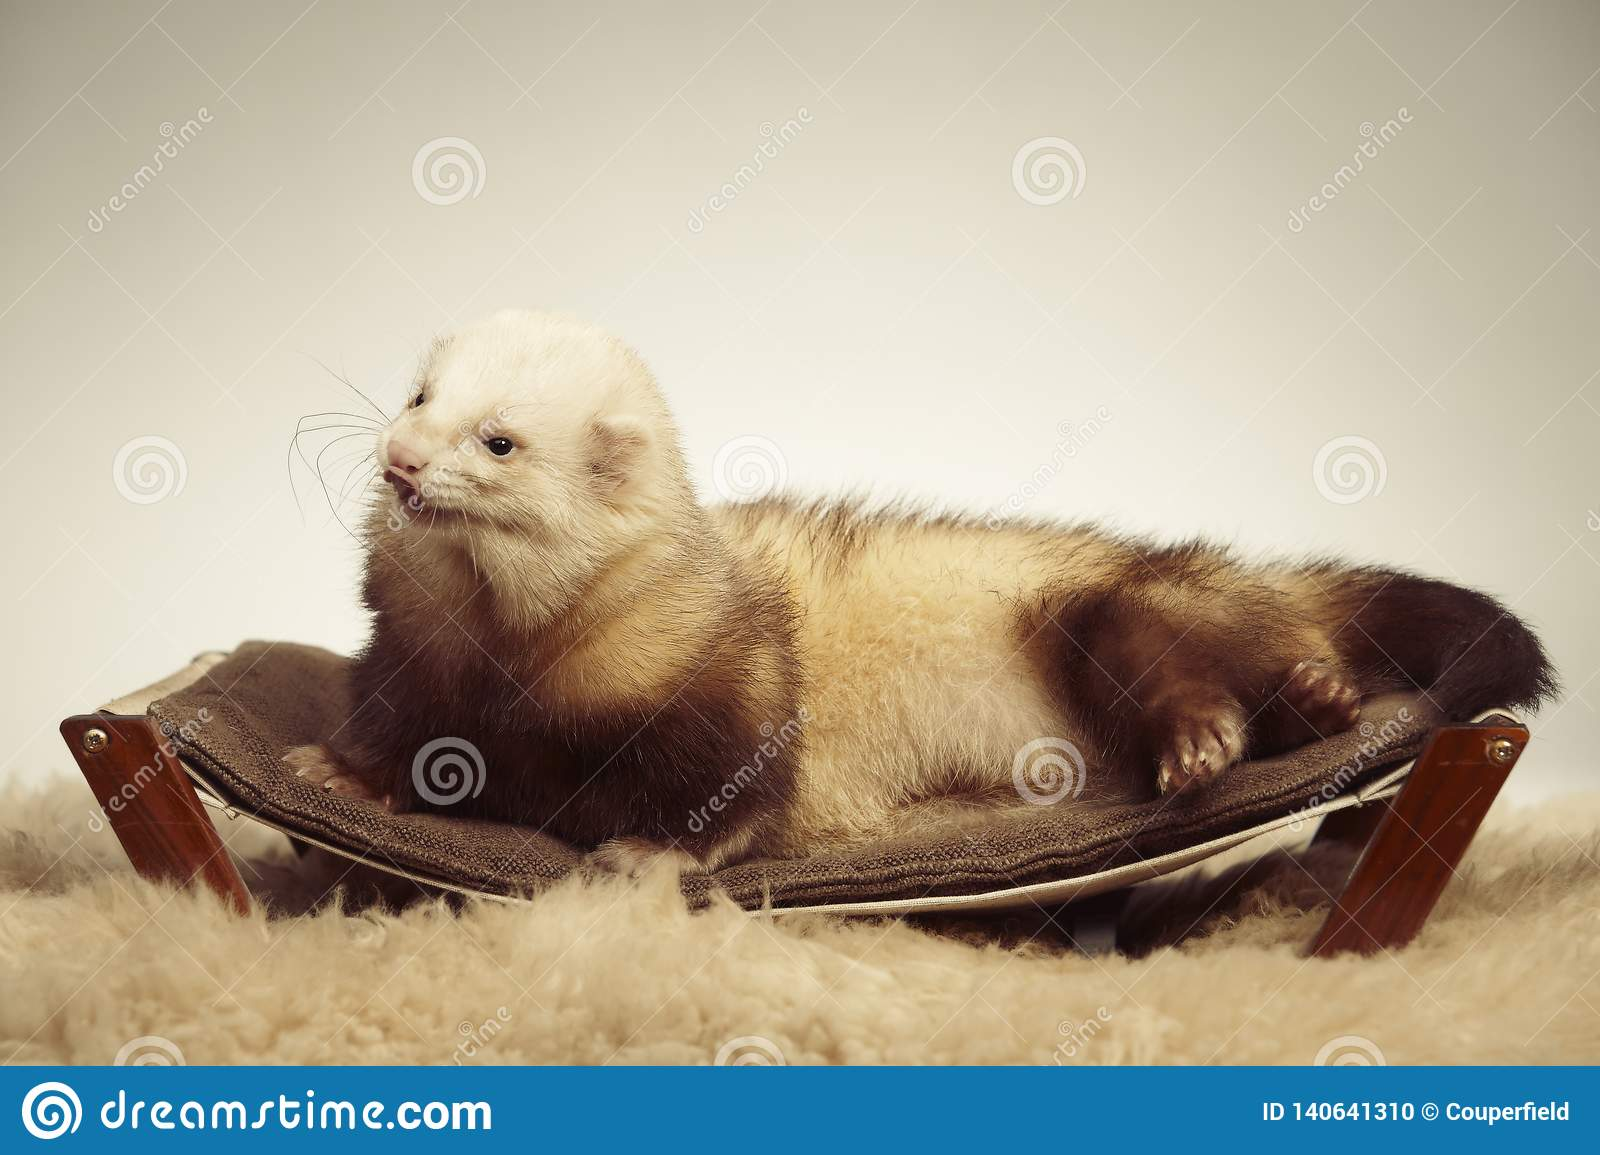 Ferret male of other pattern laying on coach in studio